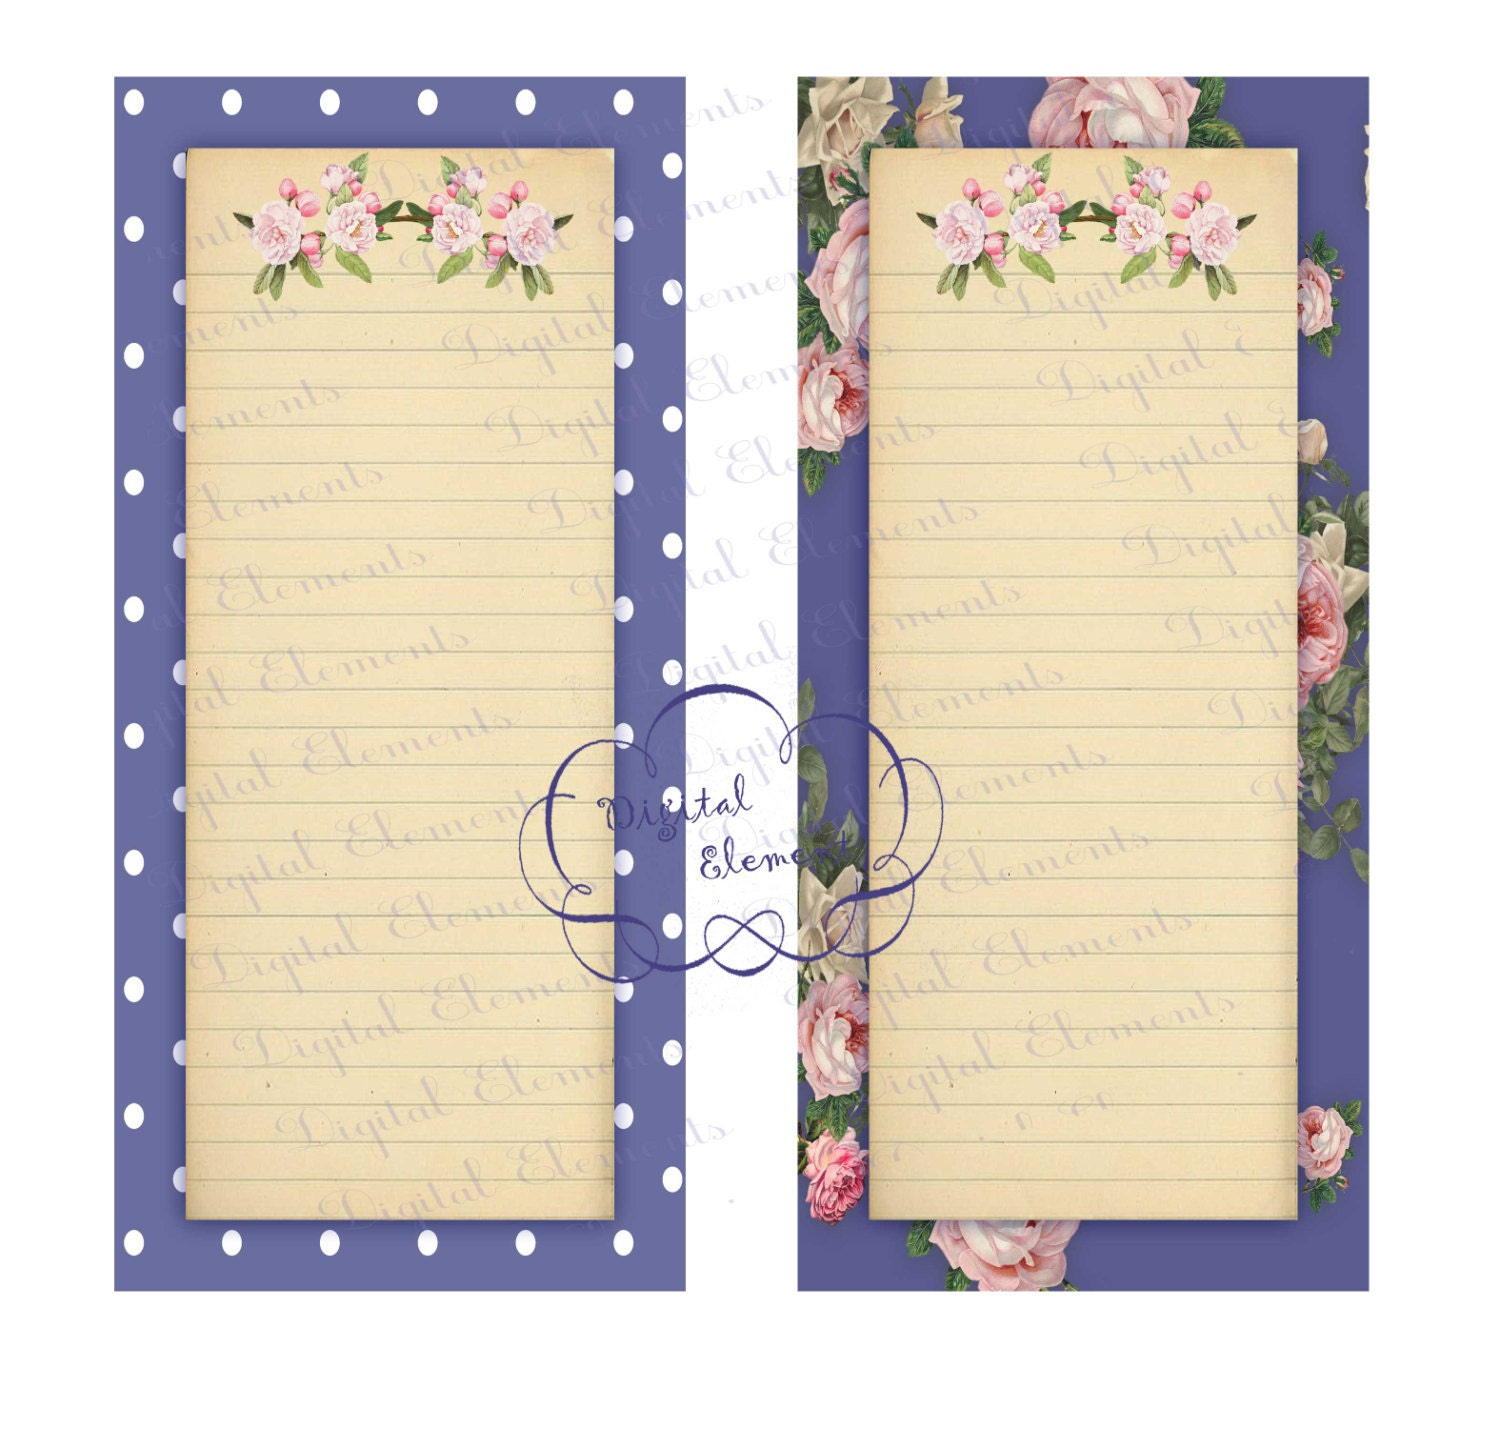 Scrapbook paper note - This Is A Digital File